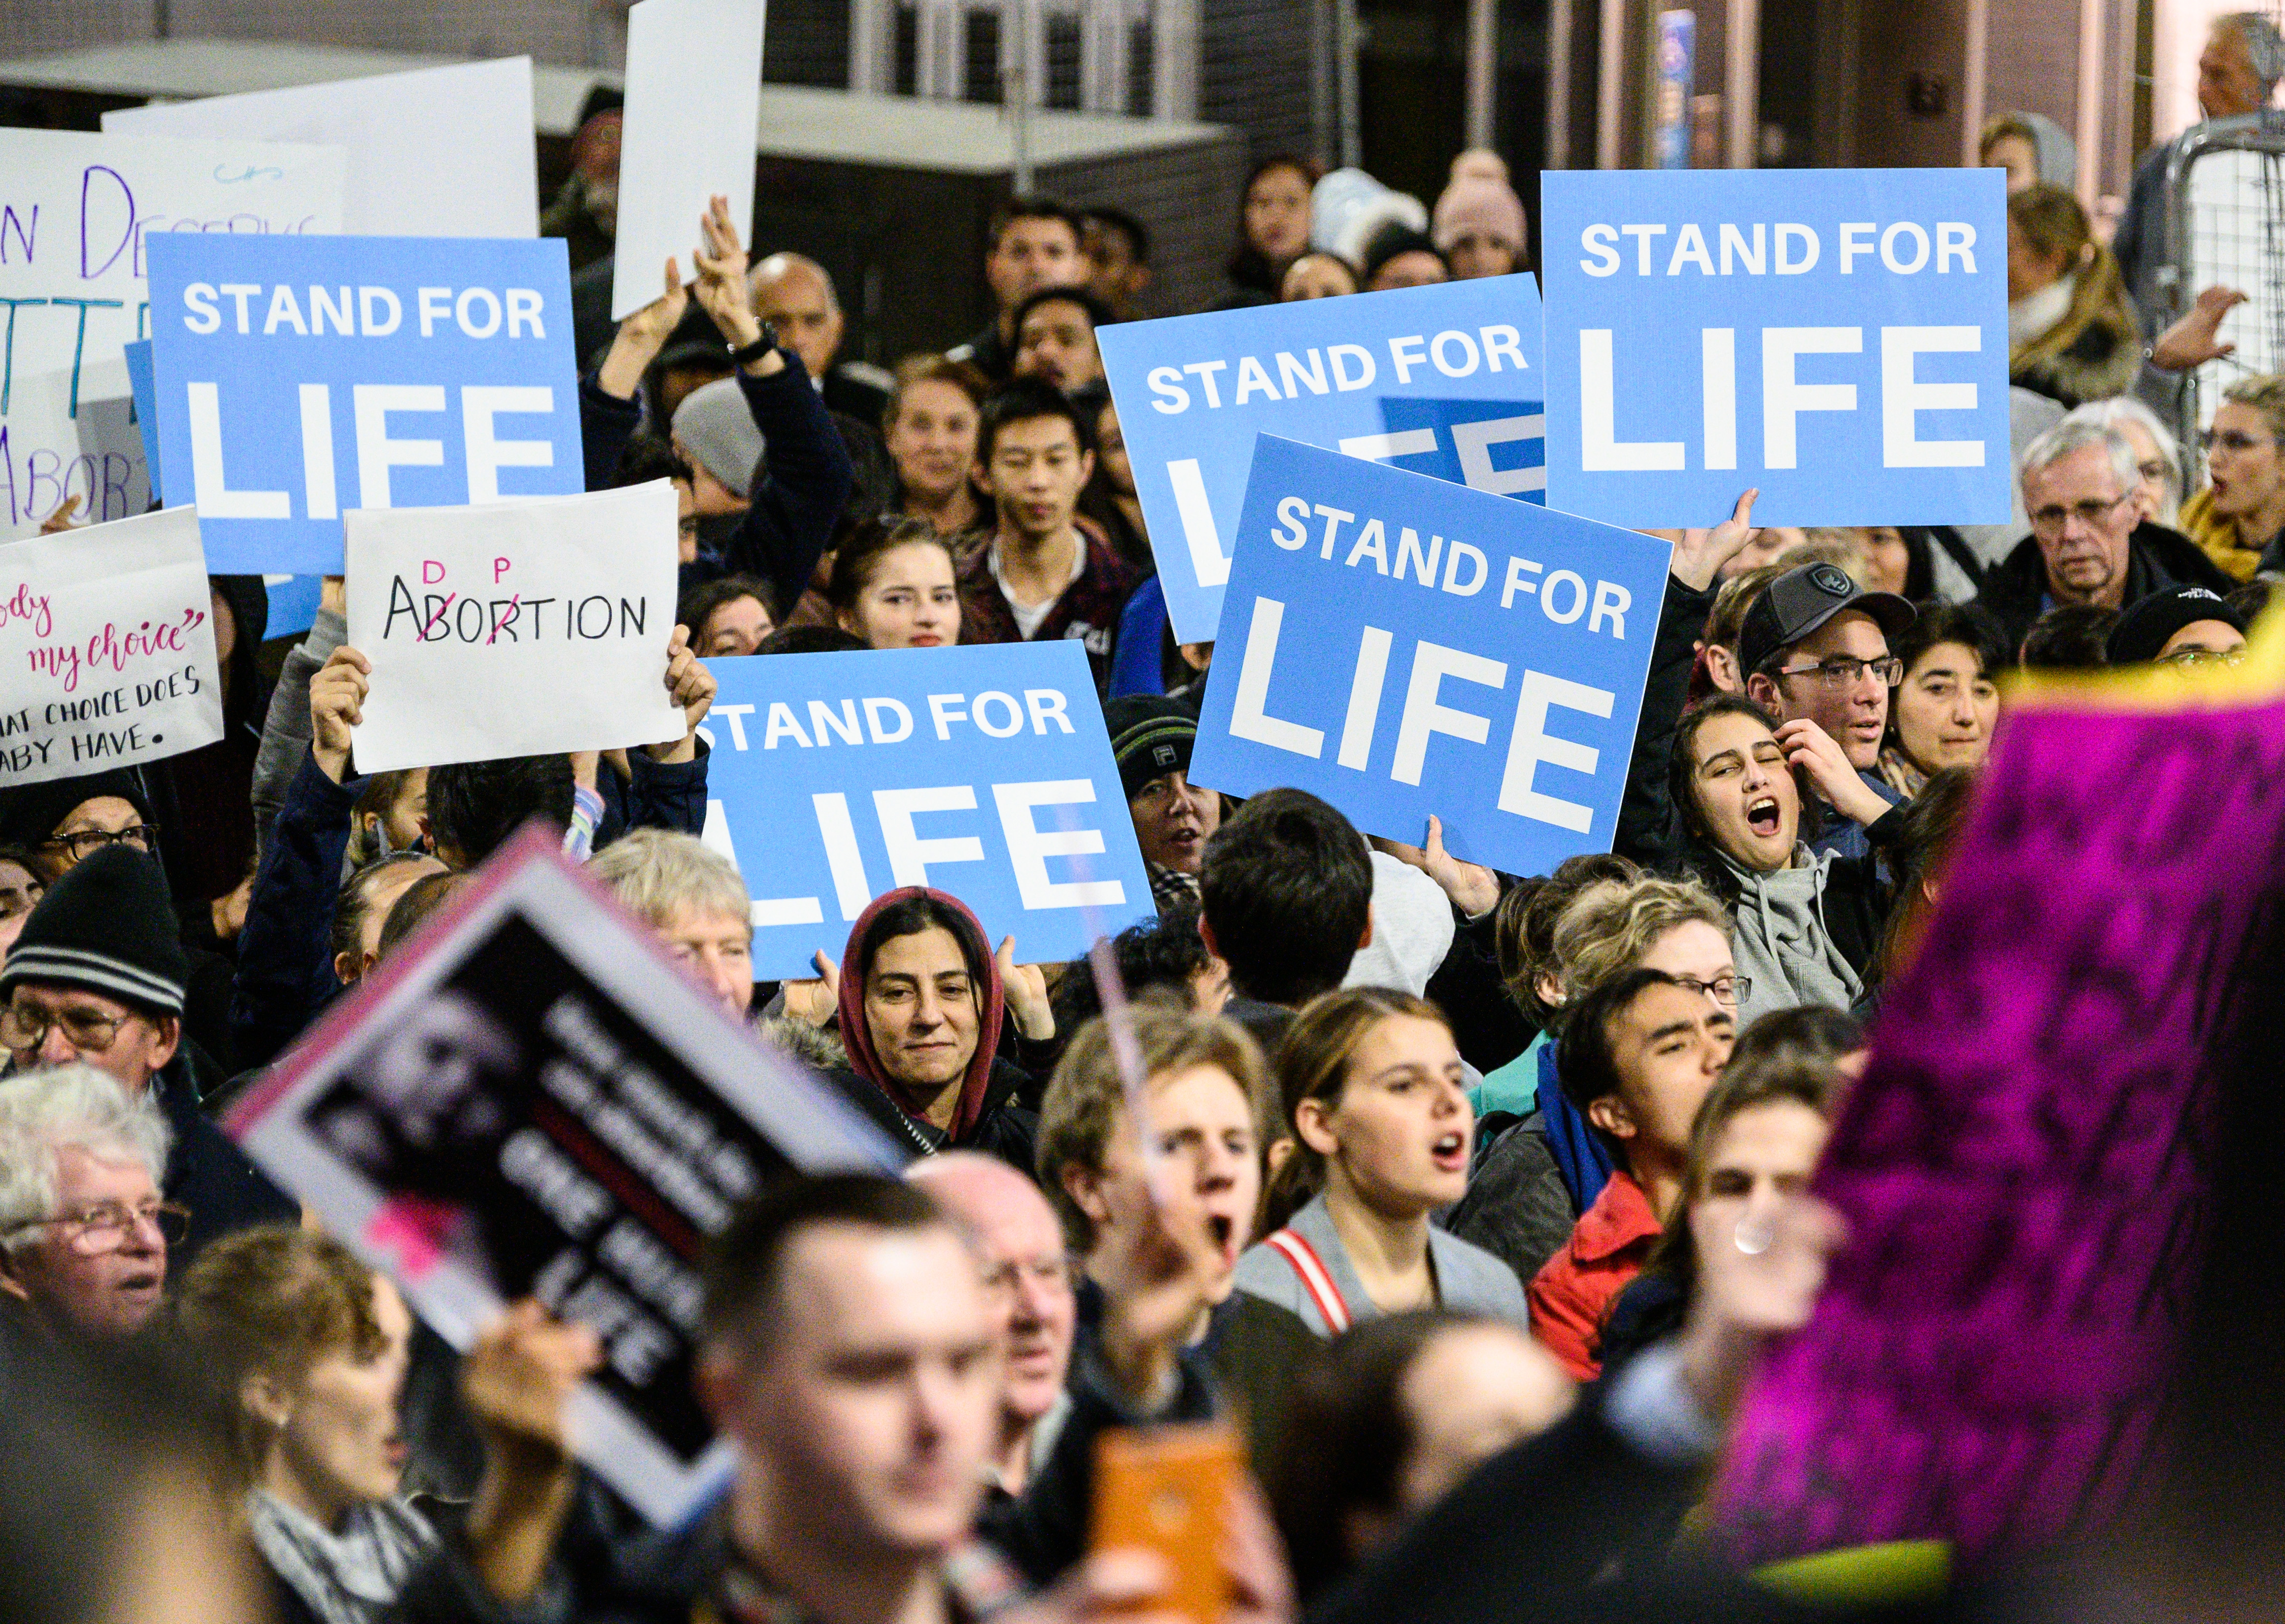 SYDNEY, AUSTRALIA - AUGUST 20: Pro-Life protestors demonstrating on August 20, 2019 in Martin Place, Sydney, Australia. The protesters oppose the NSW abortion bill which will decriminalise Abortion. The rally organisers say it will allow abortion for any reason until birth and won't prevent sex selection terminations. A vote on the bill was planned to take place this week but has been delayed until the Mid September. (Photo by James Gourley/Getty Images)